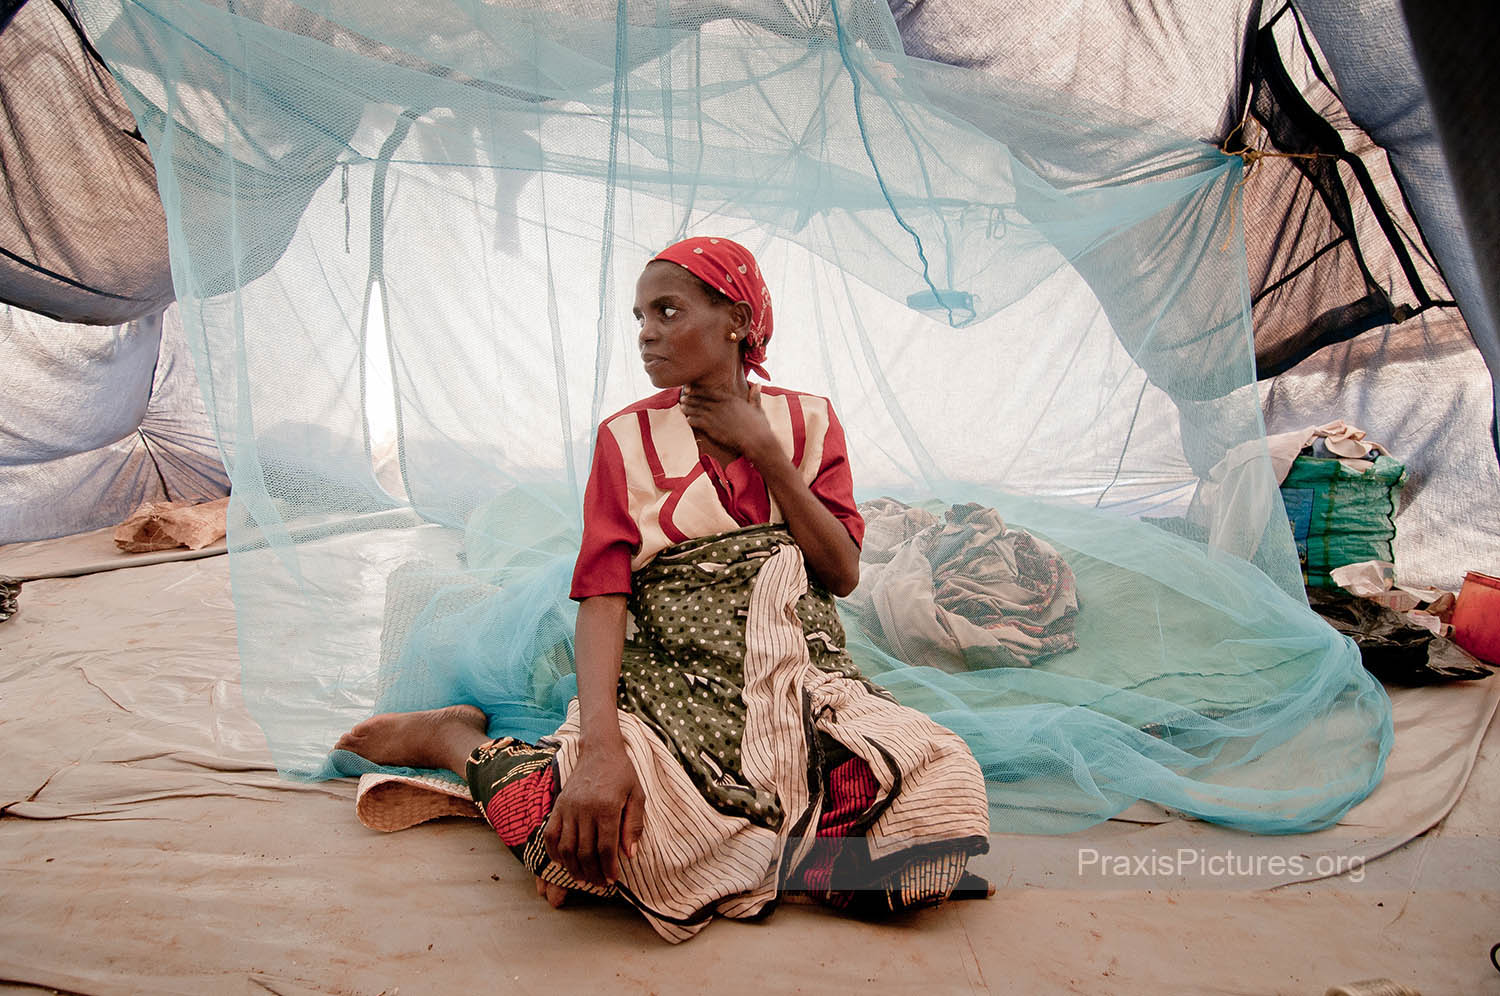 "MWAJUMA - All 258 of the villagers were dumped in a one-room abandoned building in the middle of the night one year ago. The Christian Council of Tanzania and Norwegian Church Aid heard about their situation and have provided the group with the tents they now call home.  In an interview with the Norwegian Church Aid, Faida Gerald says,  ""we have lost a lot of things including our sense of belonging, clothes and other household materials. What hurts most is that they buried even already harvested crops, which we would have sold to get some income to buy food and take care of our children.""   Their sense of loss is intensified by their feelings of betrayal by their own democratically elected government, as Faida contemplates;  ""I wonder what they have given to the government to subject us to all this."""